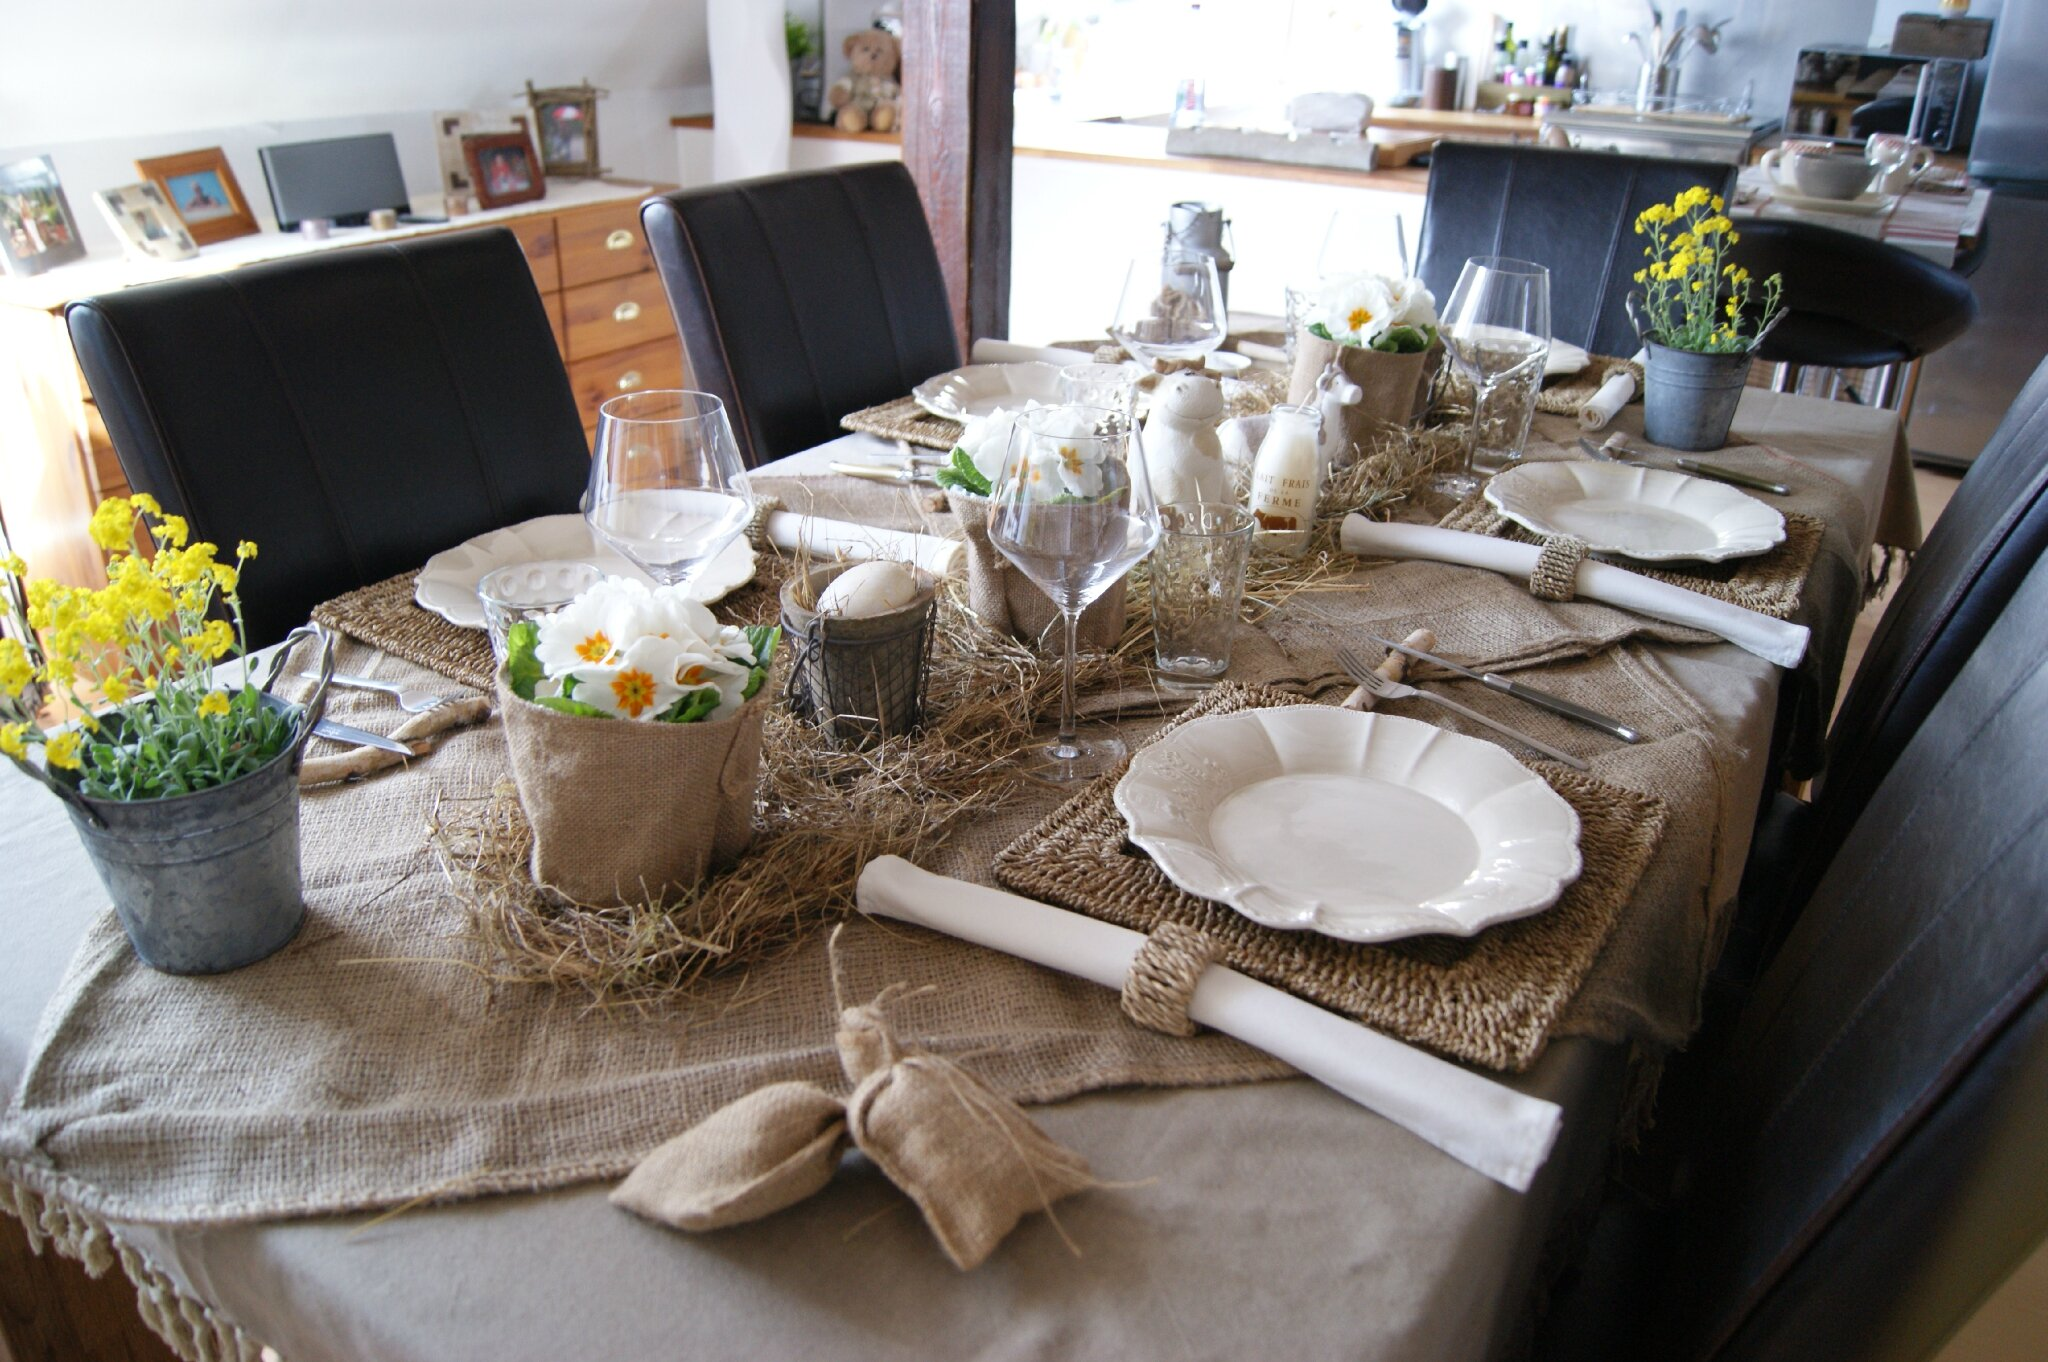 Bonjour voici ma table de p ques au th me d ner les tables de pralinette - Decoration table champetre jardin la rochelle ...